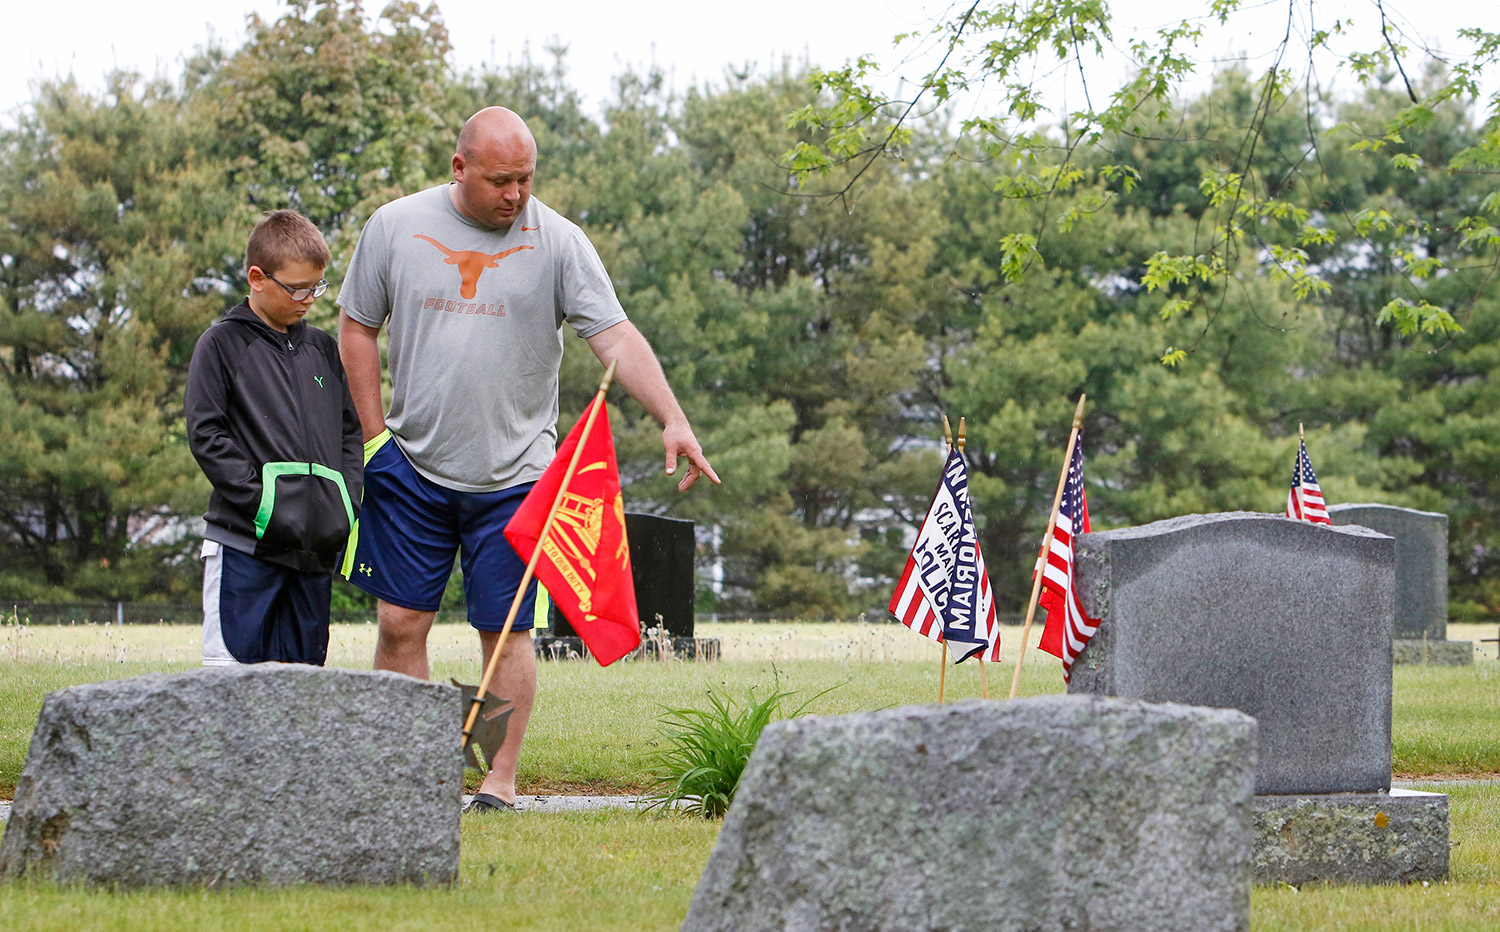 Jason Greenleaf and his son, Jackson, 9, explore Black Point Cemetery following a Memorial Day service in Scarborough. Jason, who is a Scarborough firefighter, says both sides of the family include police officers and firefighters that are buried at Black Point.